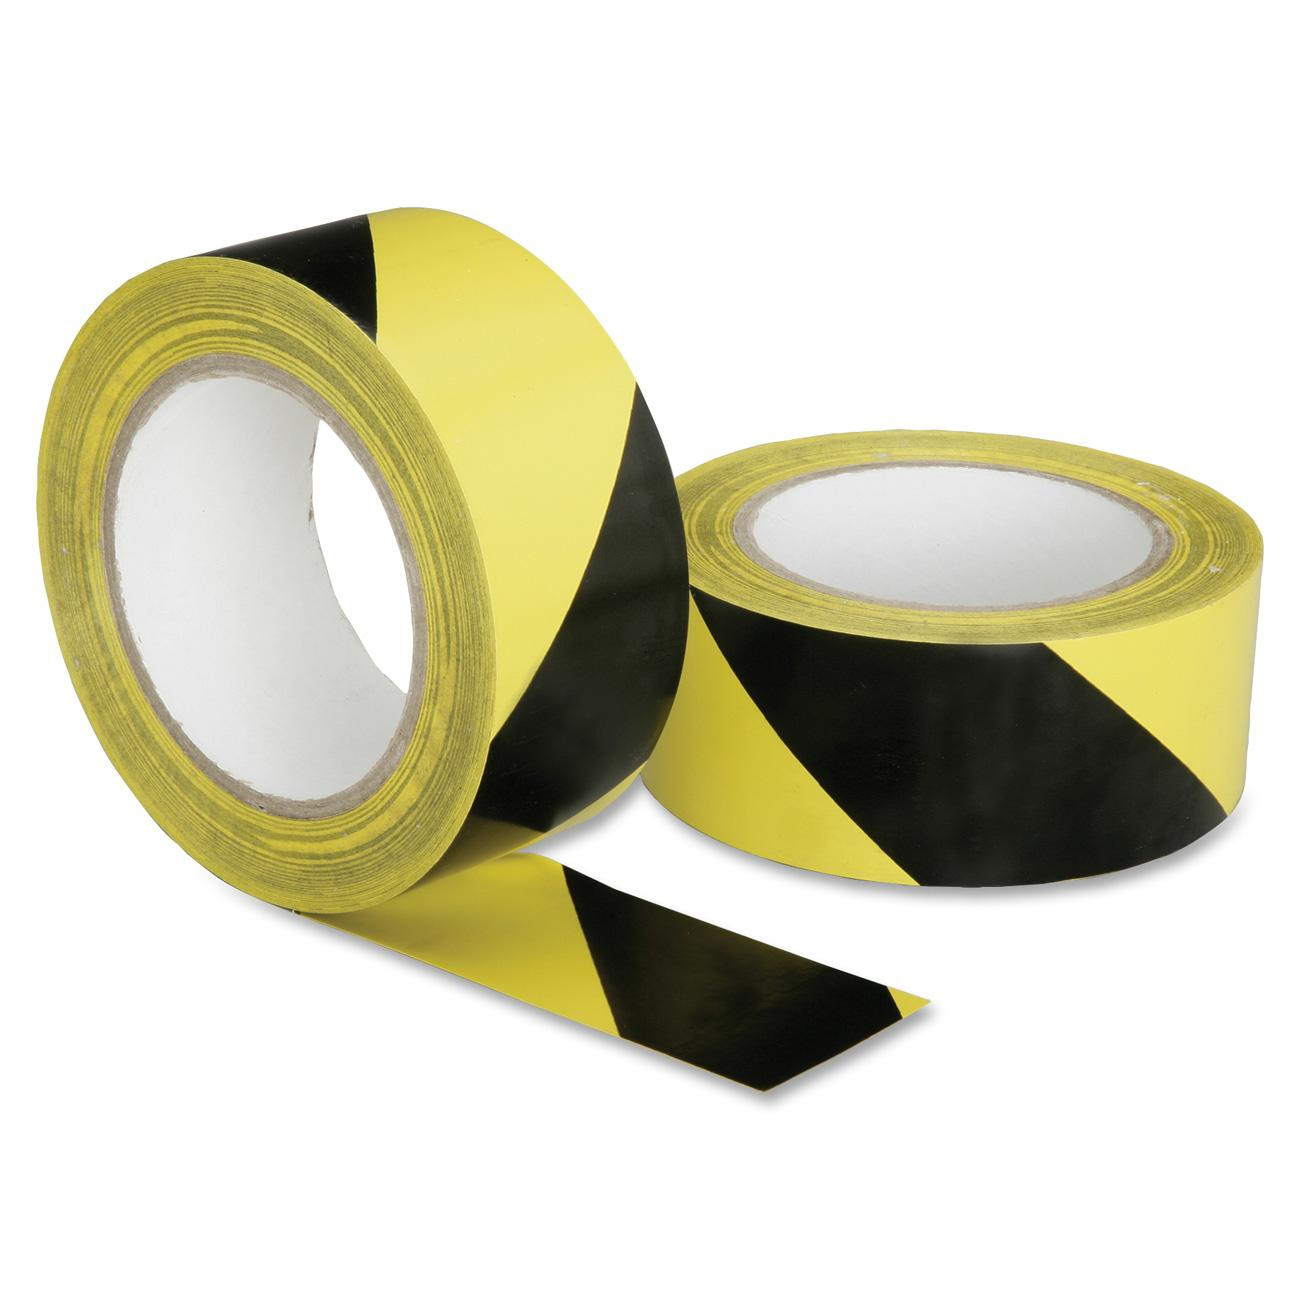 "Skilcraft Hvy-duty Poly Floor Safety Marking Tape - 2"" Width X 36 Yd Length - 3"" Core - Plastic, Vinyl - Flexible, Biodegradeable, Adhesive, Pressure Sensitive, Heavy Duty - 16 Roll - (nsn-6174251)"